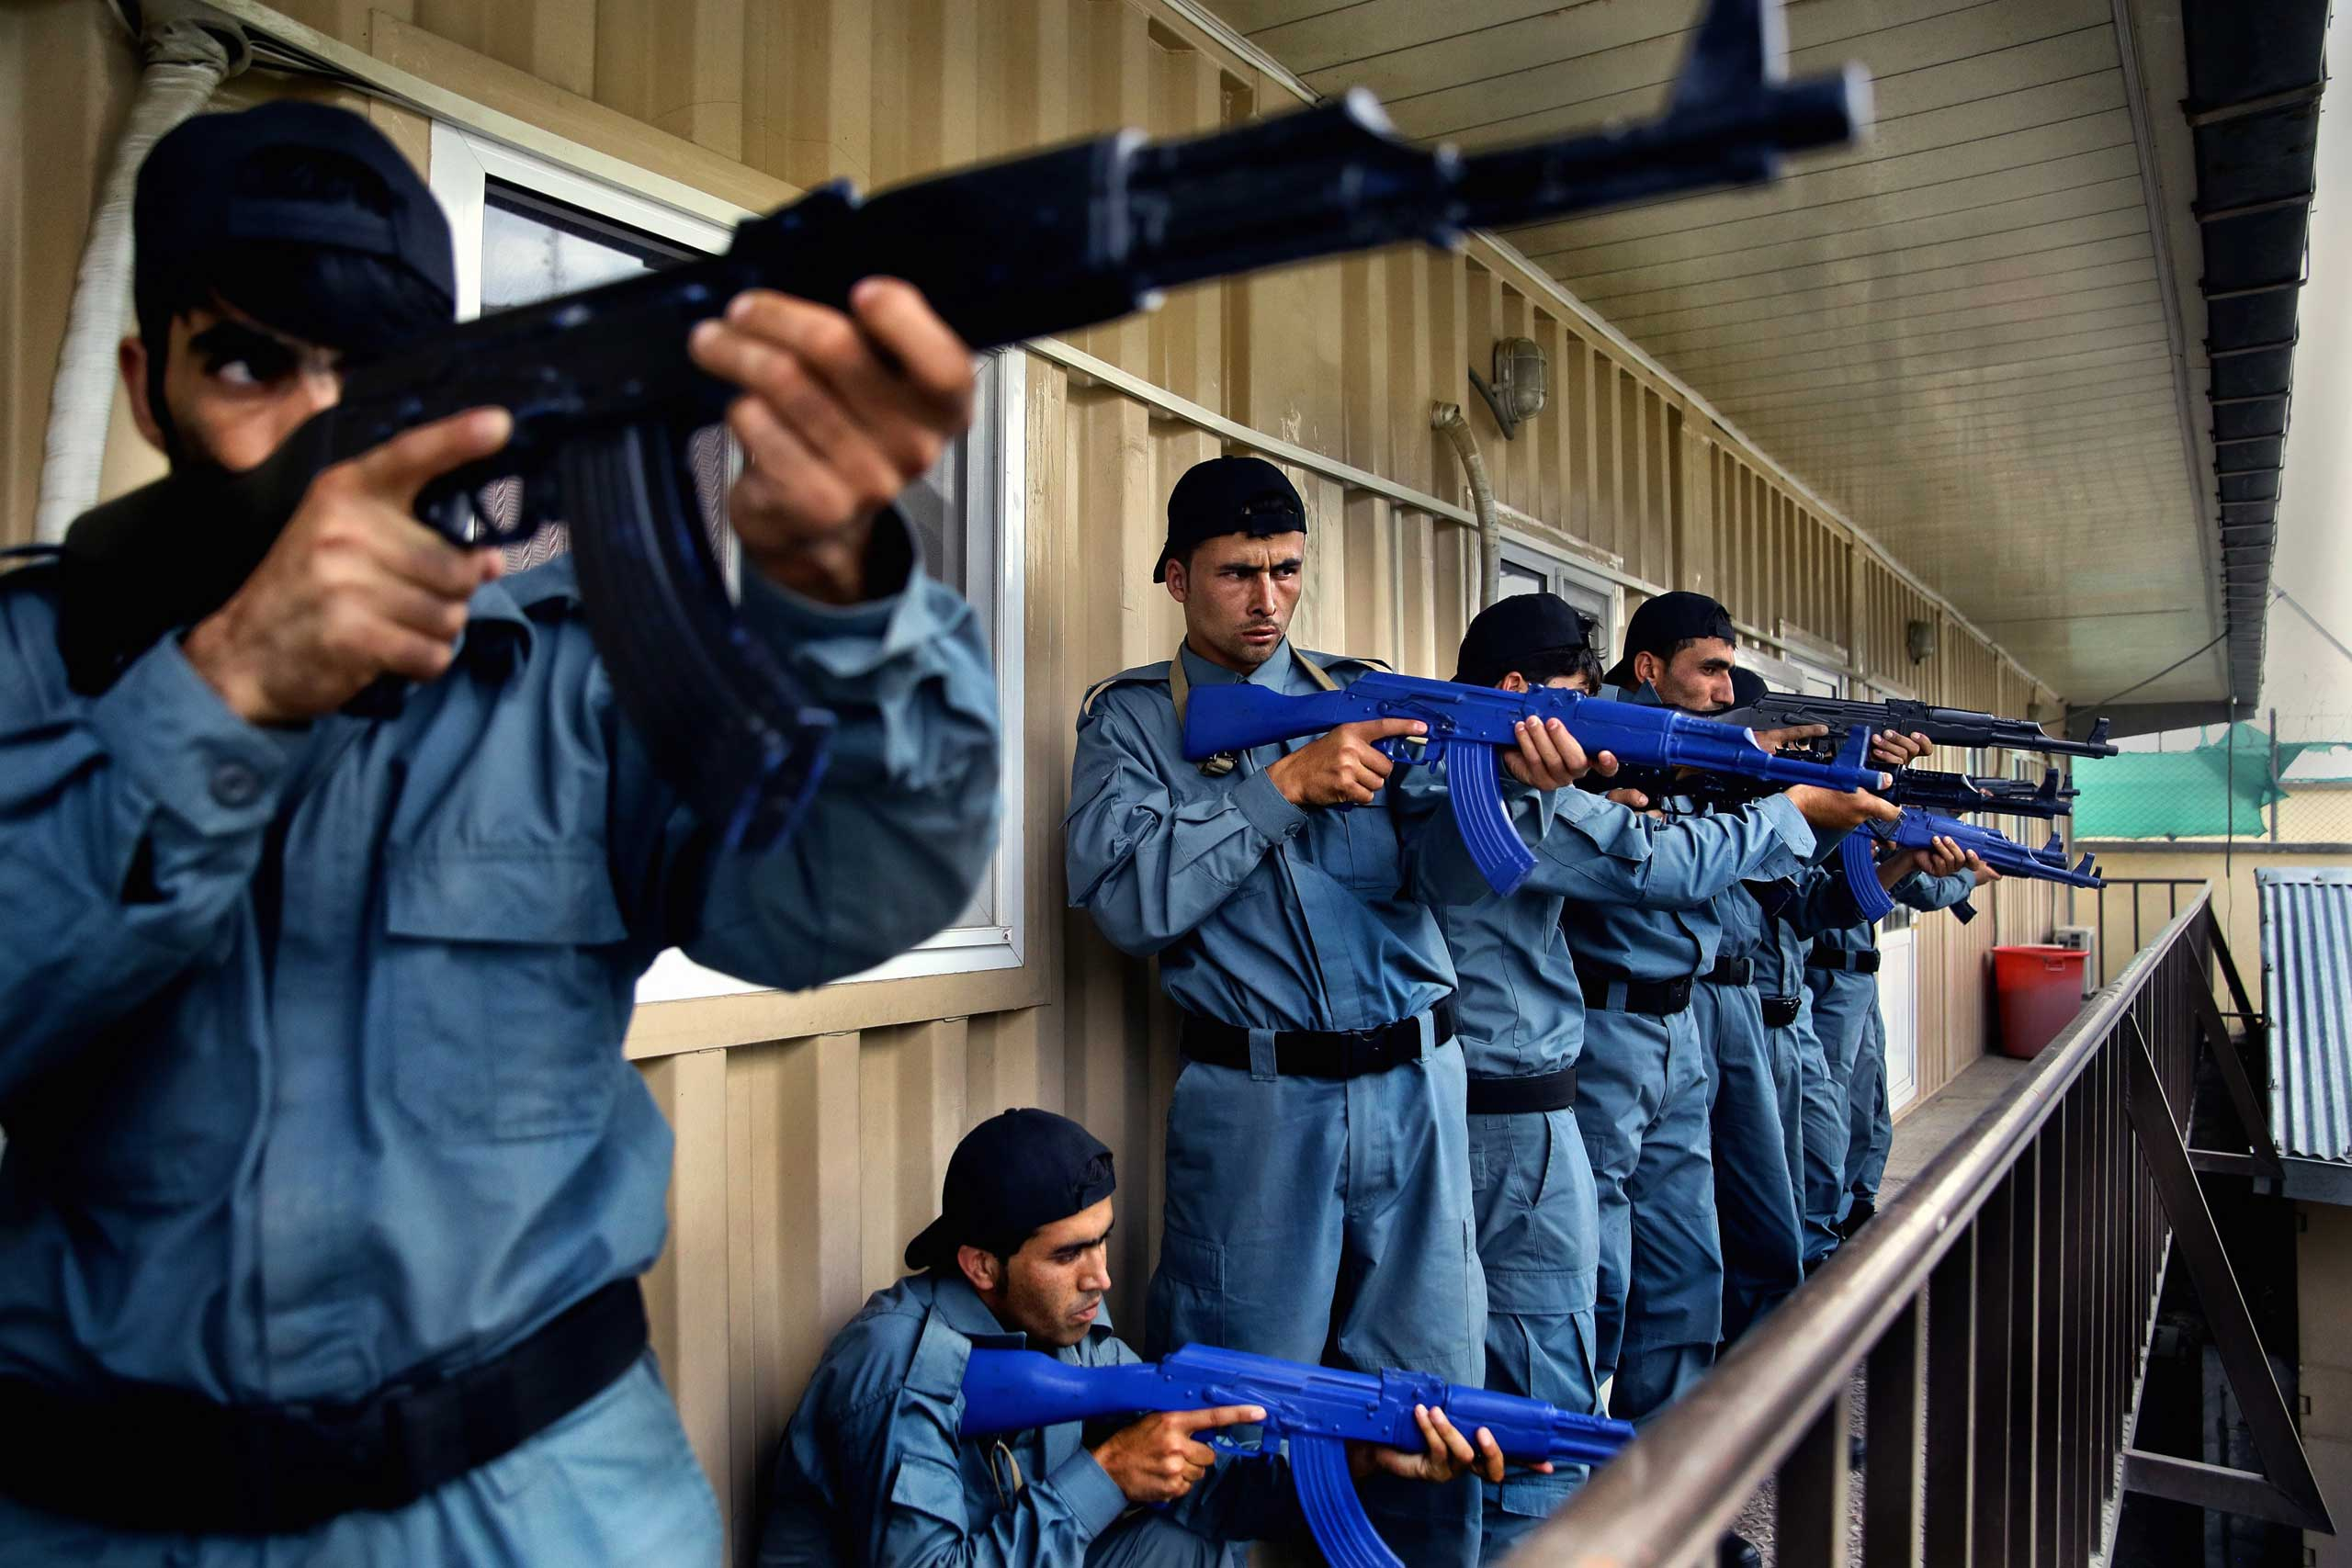 Afghan National Police officers from the Anti-Narcotics Quick Reaction Force (ANQRF) carry out a raid scenario exercise intended for drug traffickers at a training centre in Kabul on Aug. 25, 2014.